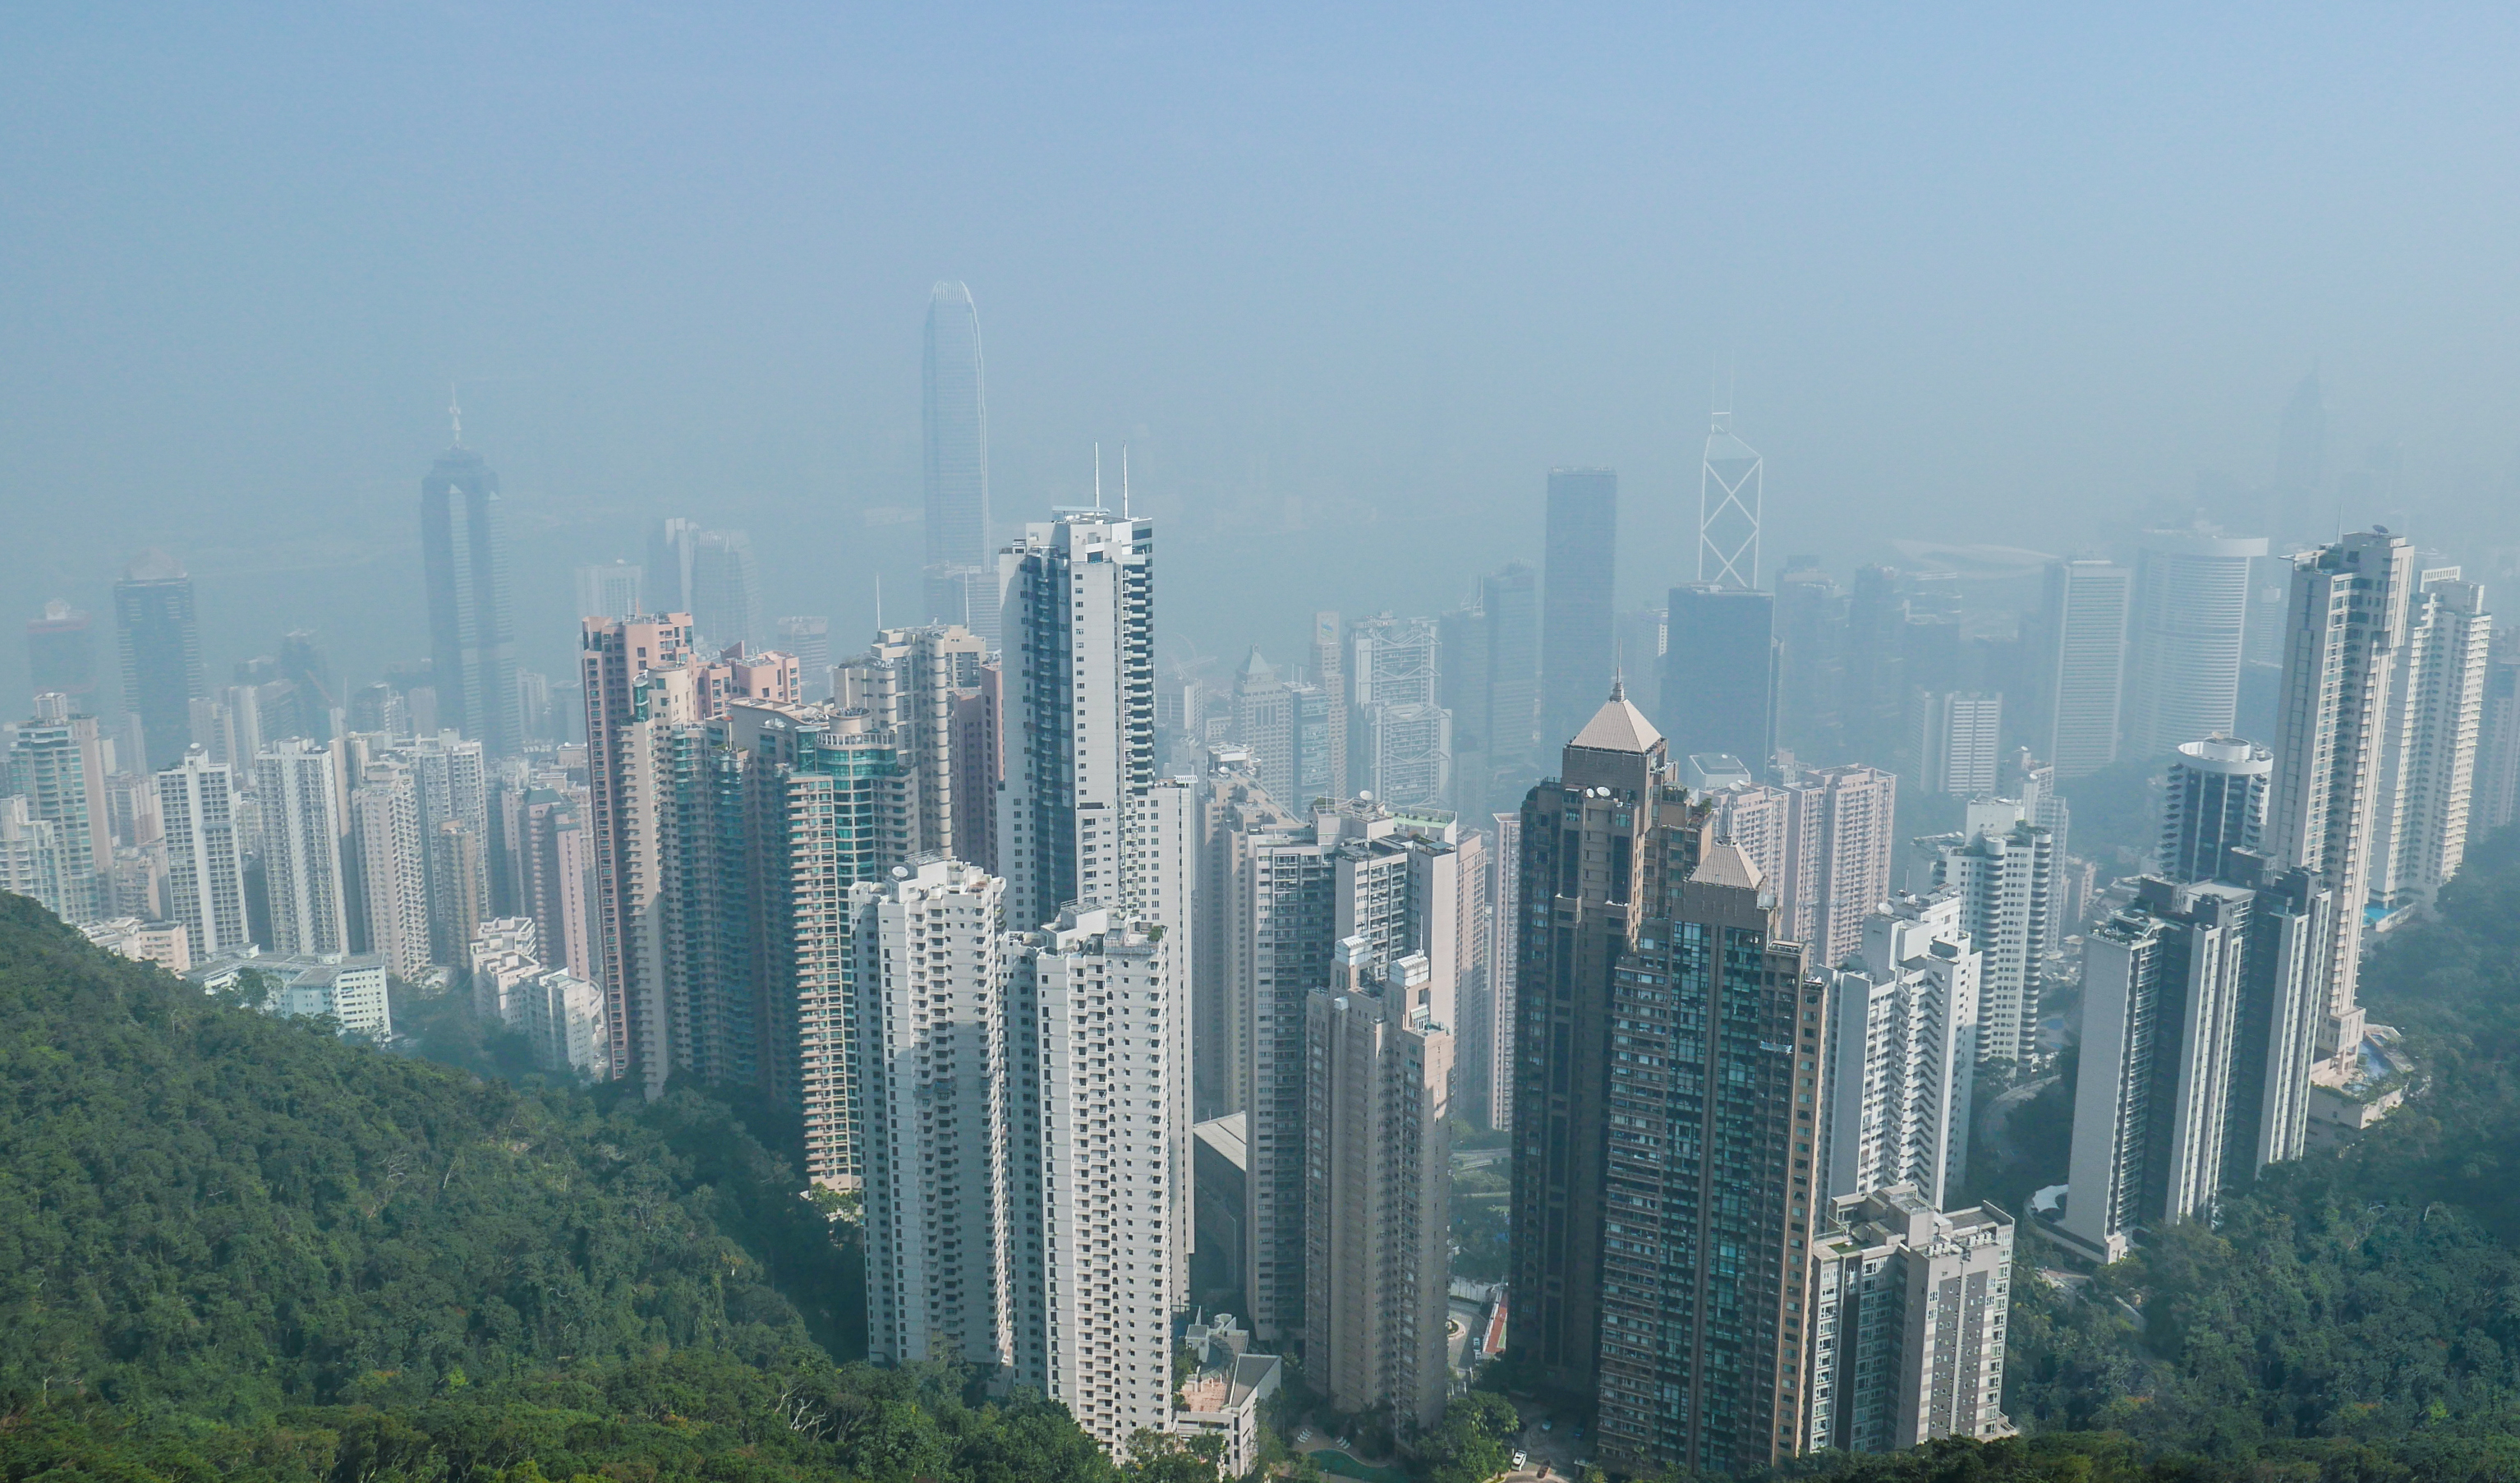 View of the city from Victoria Peak